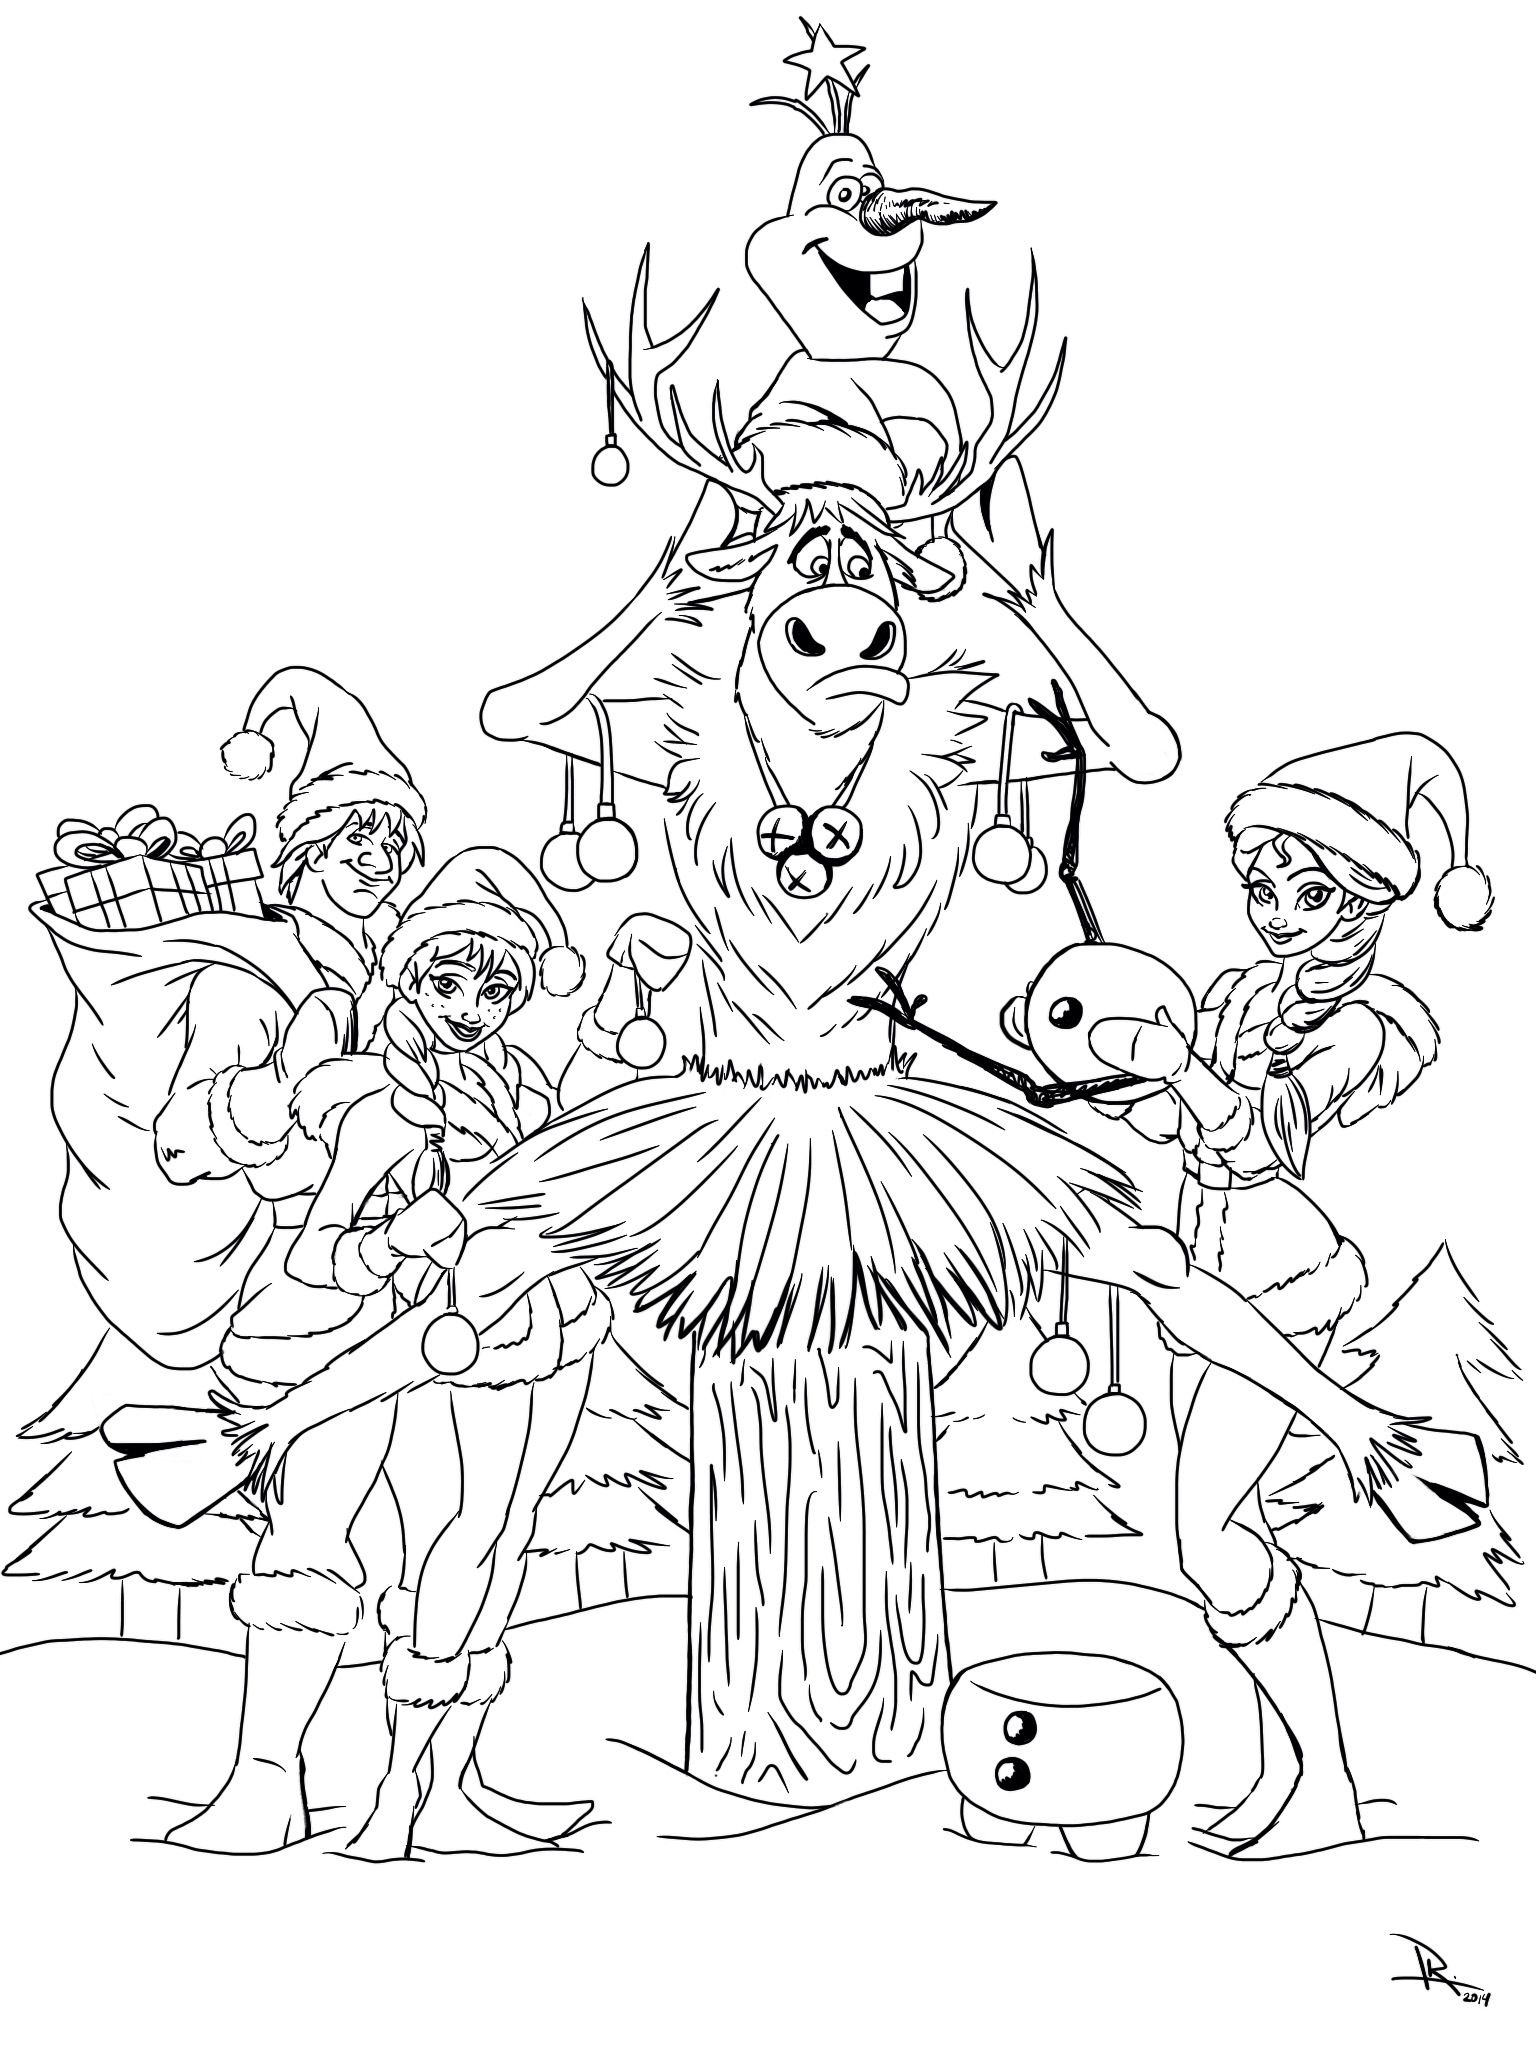 Frozen Christmas Coloring Page Kristen Hewitt Disney Coloring Pages Christmas Coloring Sheets Elsa Coloring Pages